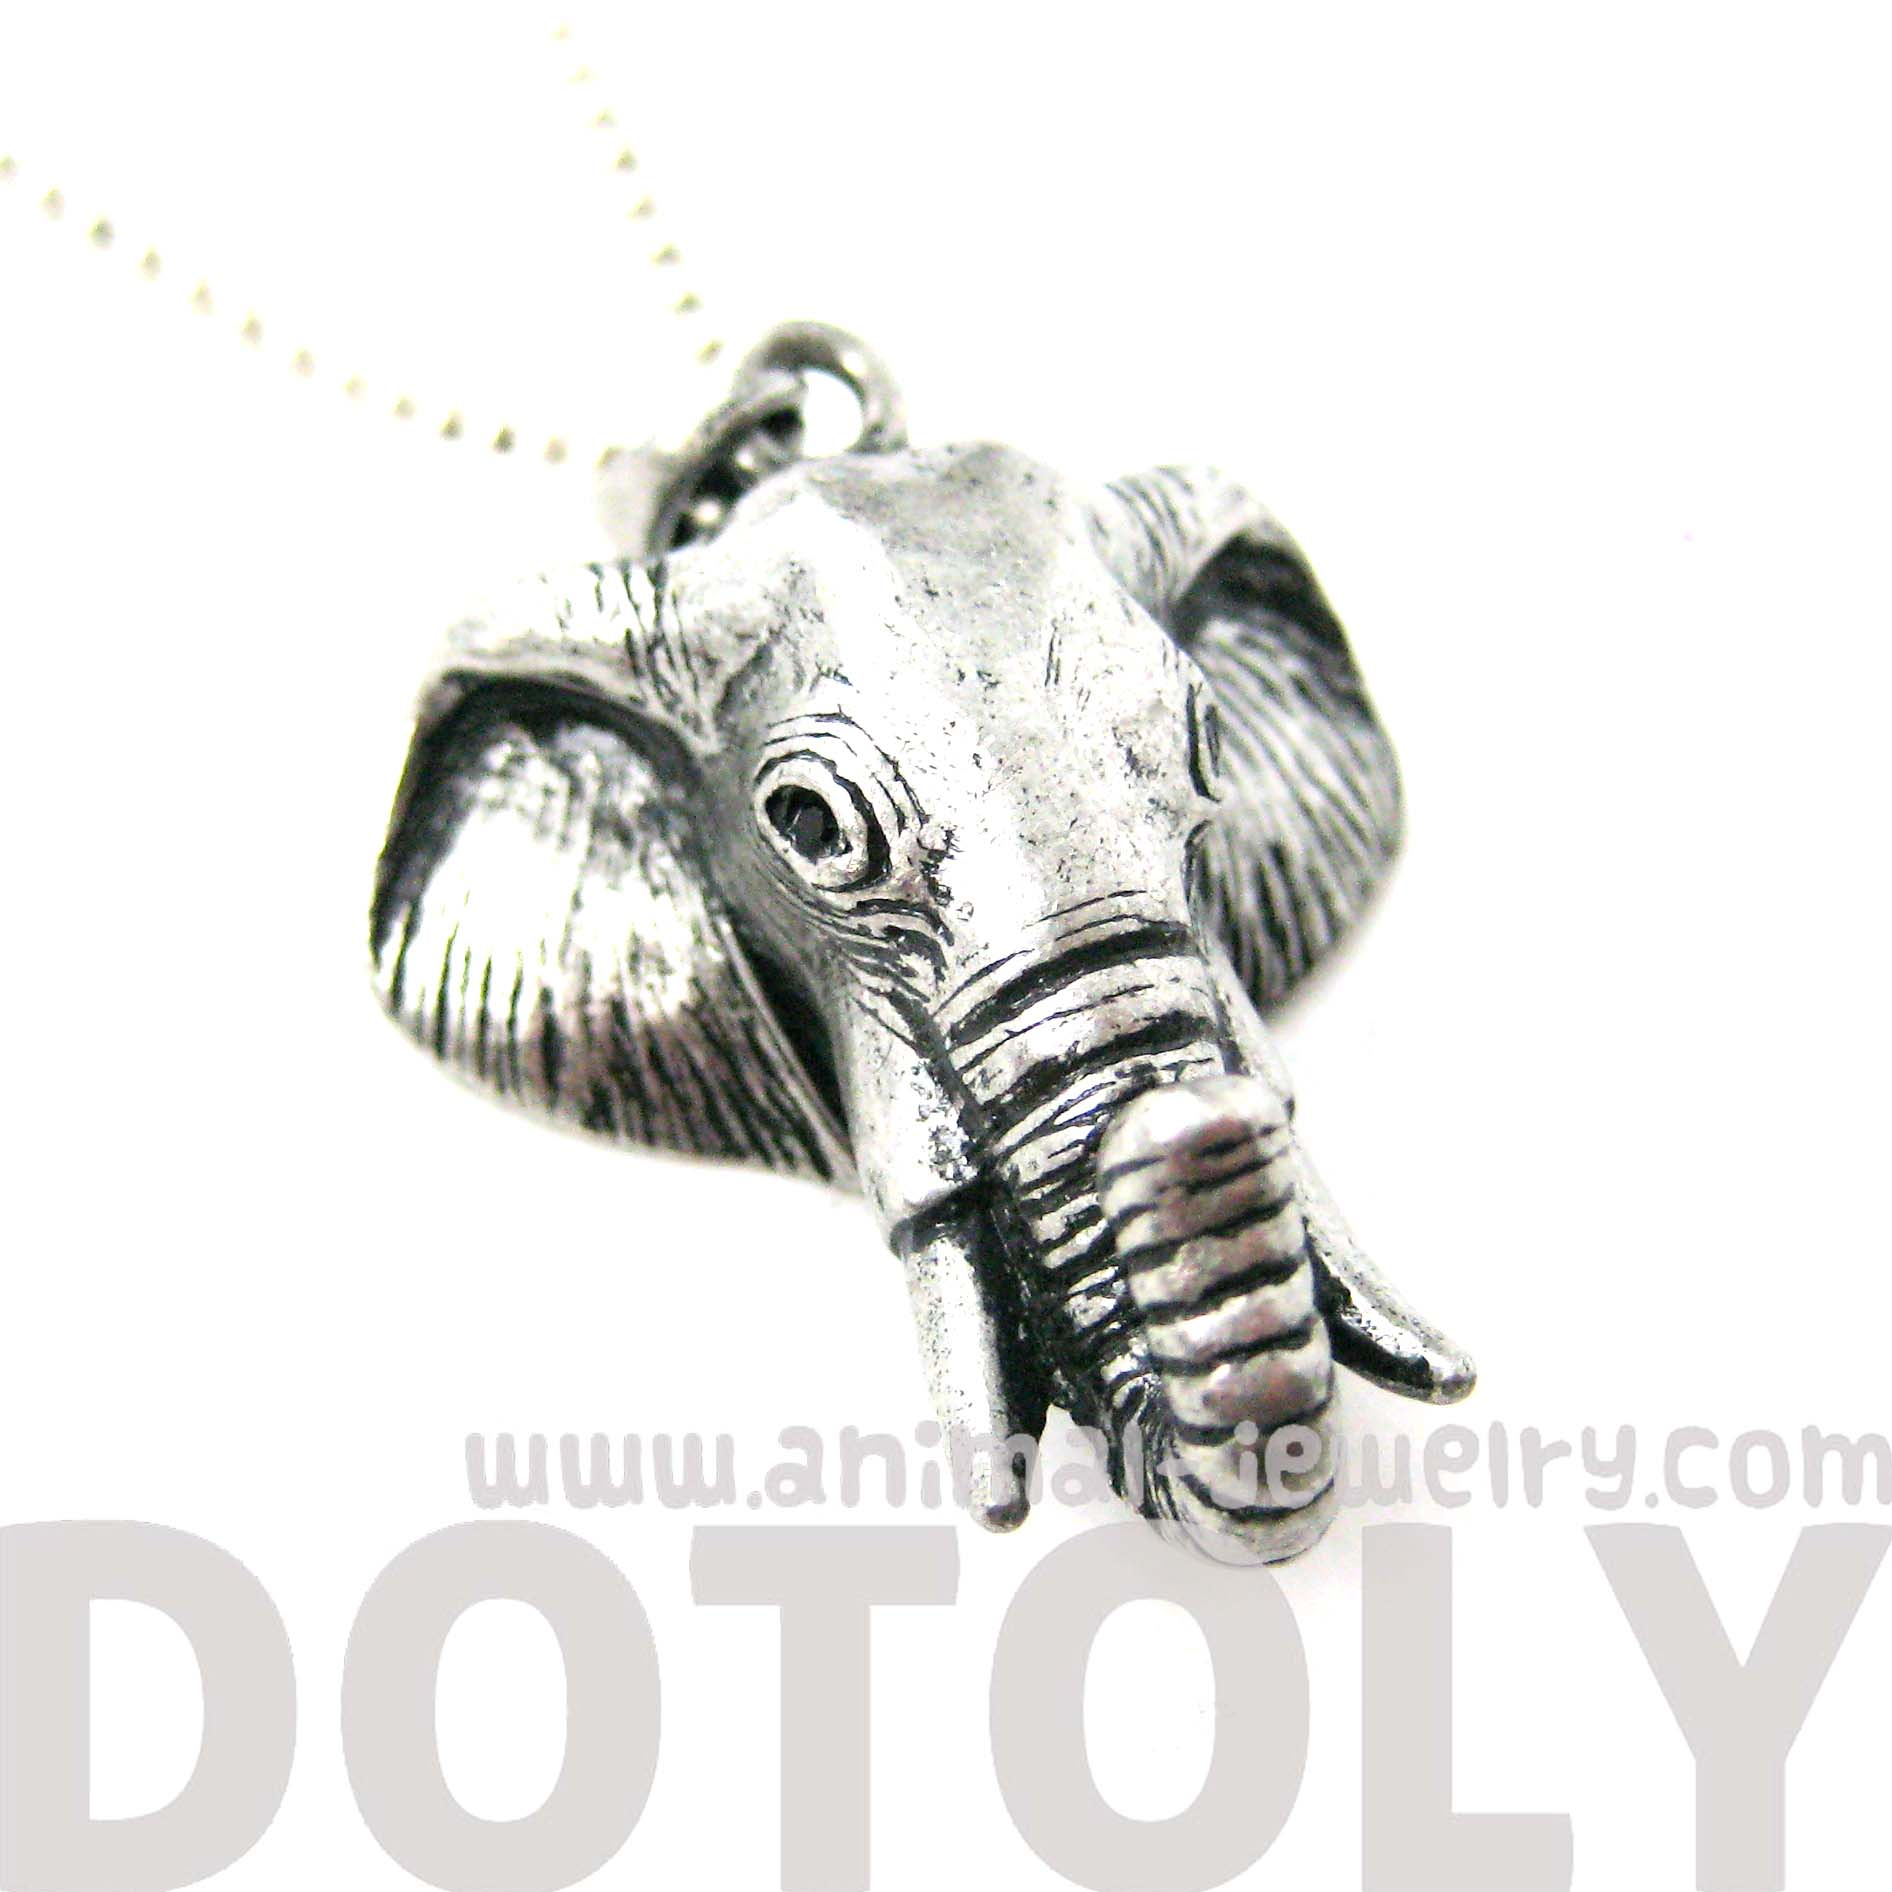 Detailed elephant head shaped animal pendant necklace in silver detailed elephant head shaped animal pendant necklace in silver thumbnail 2 aloadofball Image collections